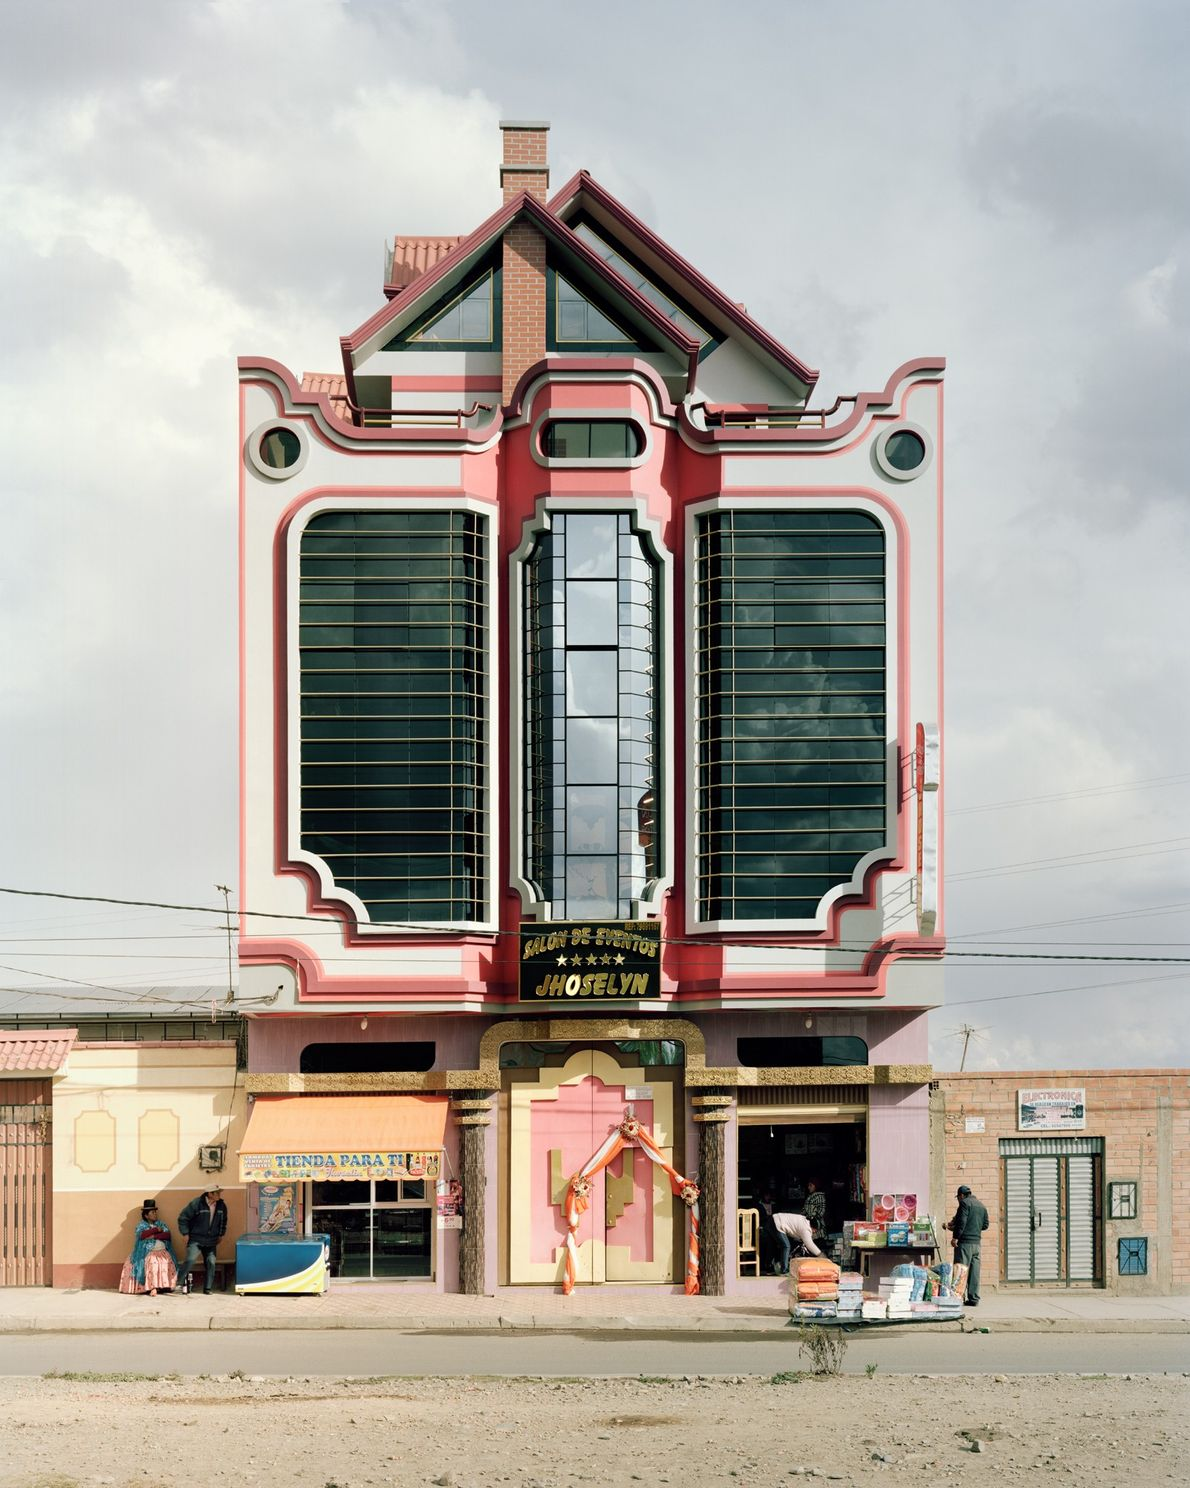 Buildings that are influenced by Mamani's style have been popping up in El Alto.